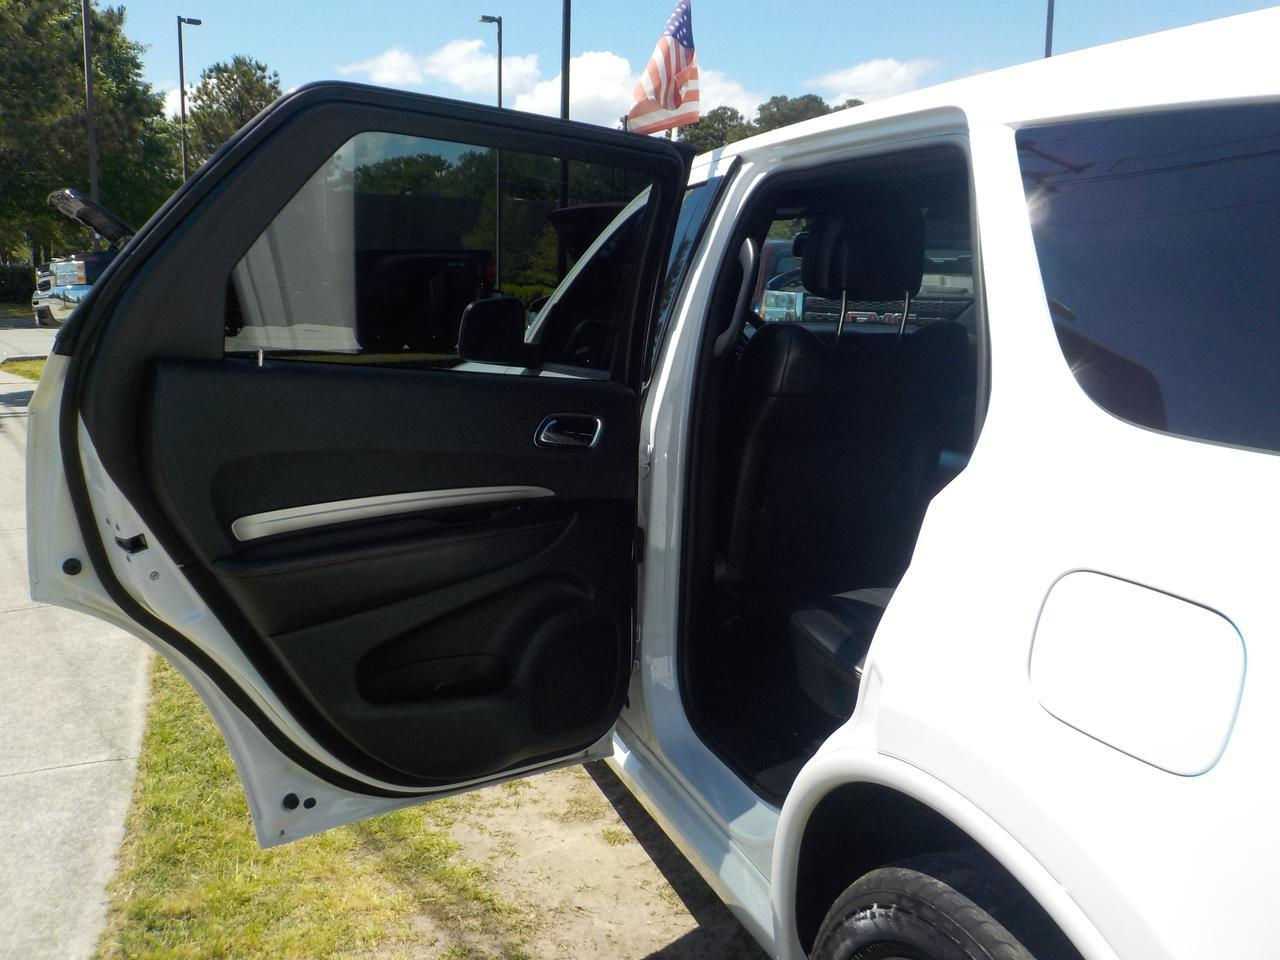 2015 DODGE DURANGO R/T 5.7 HEMI AWD, WARRANTY, 3RD ROW SEATING, NAVIGATION, POWER LIFTGATE, REMOTE START, BLUETOOTH! Virginia Beach VA